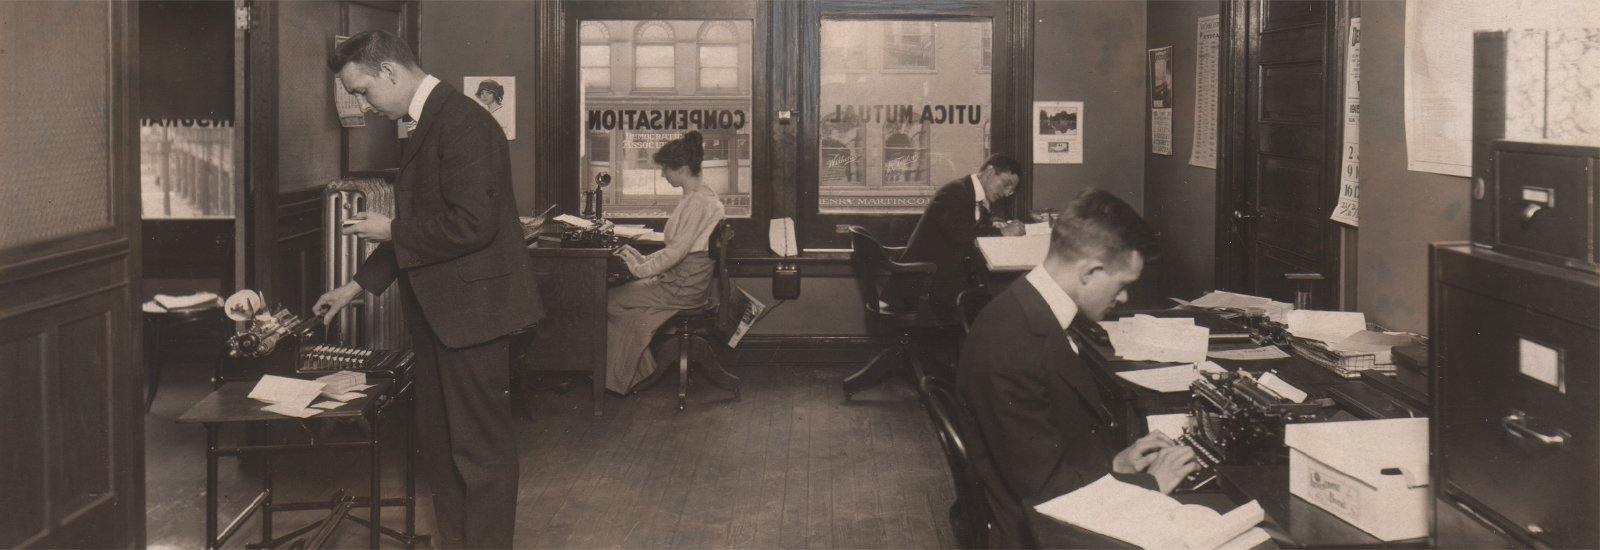 Utica Mutual's first office in Utica, NY, 1914.